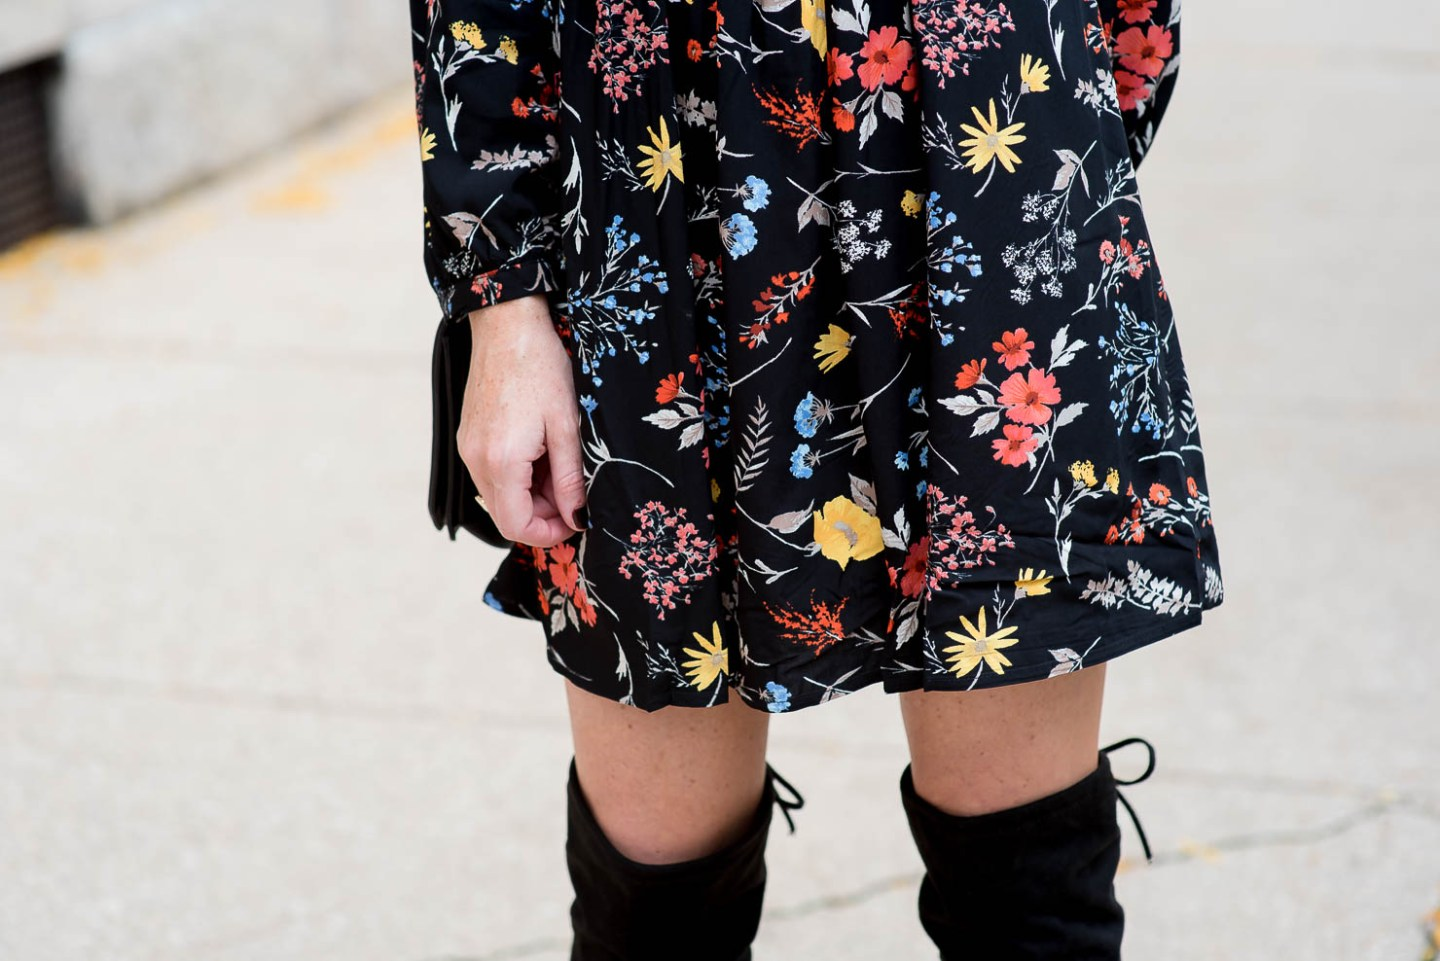 old-nay-dark-floral-tunic-dress-over-th-knee-boots-ruffle-choker-dressing-up-a-casual-dress-how-to-make-an-inexpensive-dress-look-expensive-18